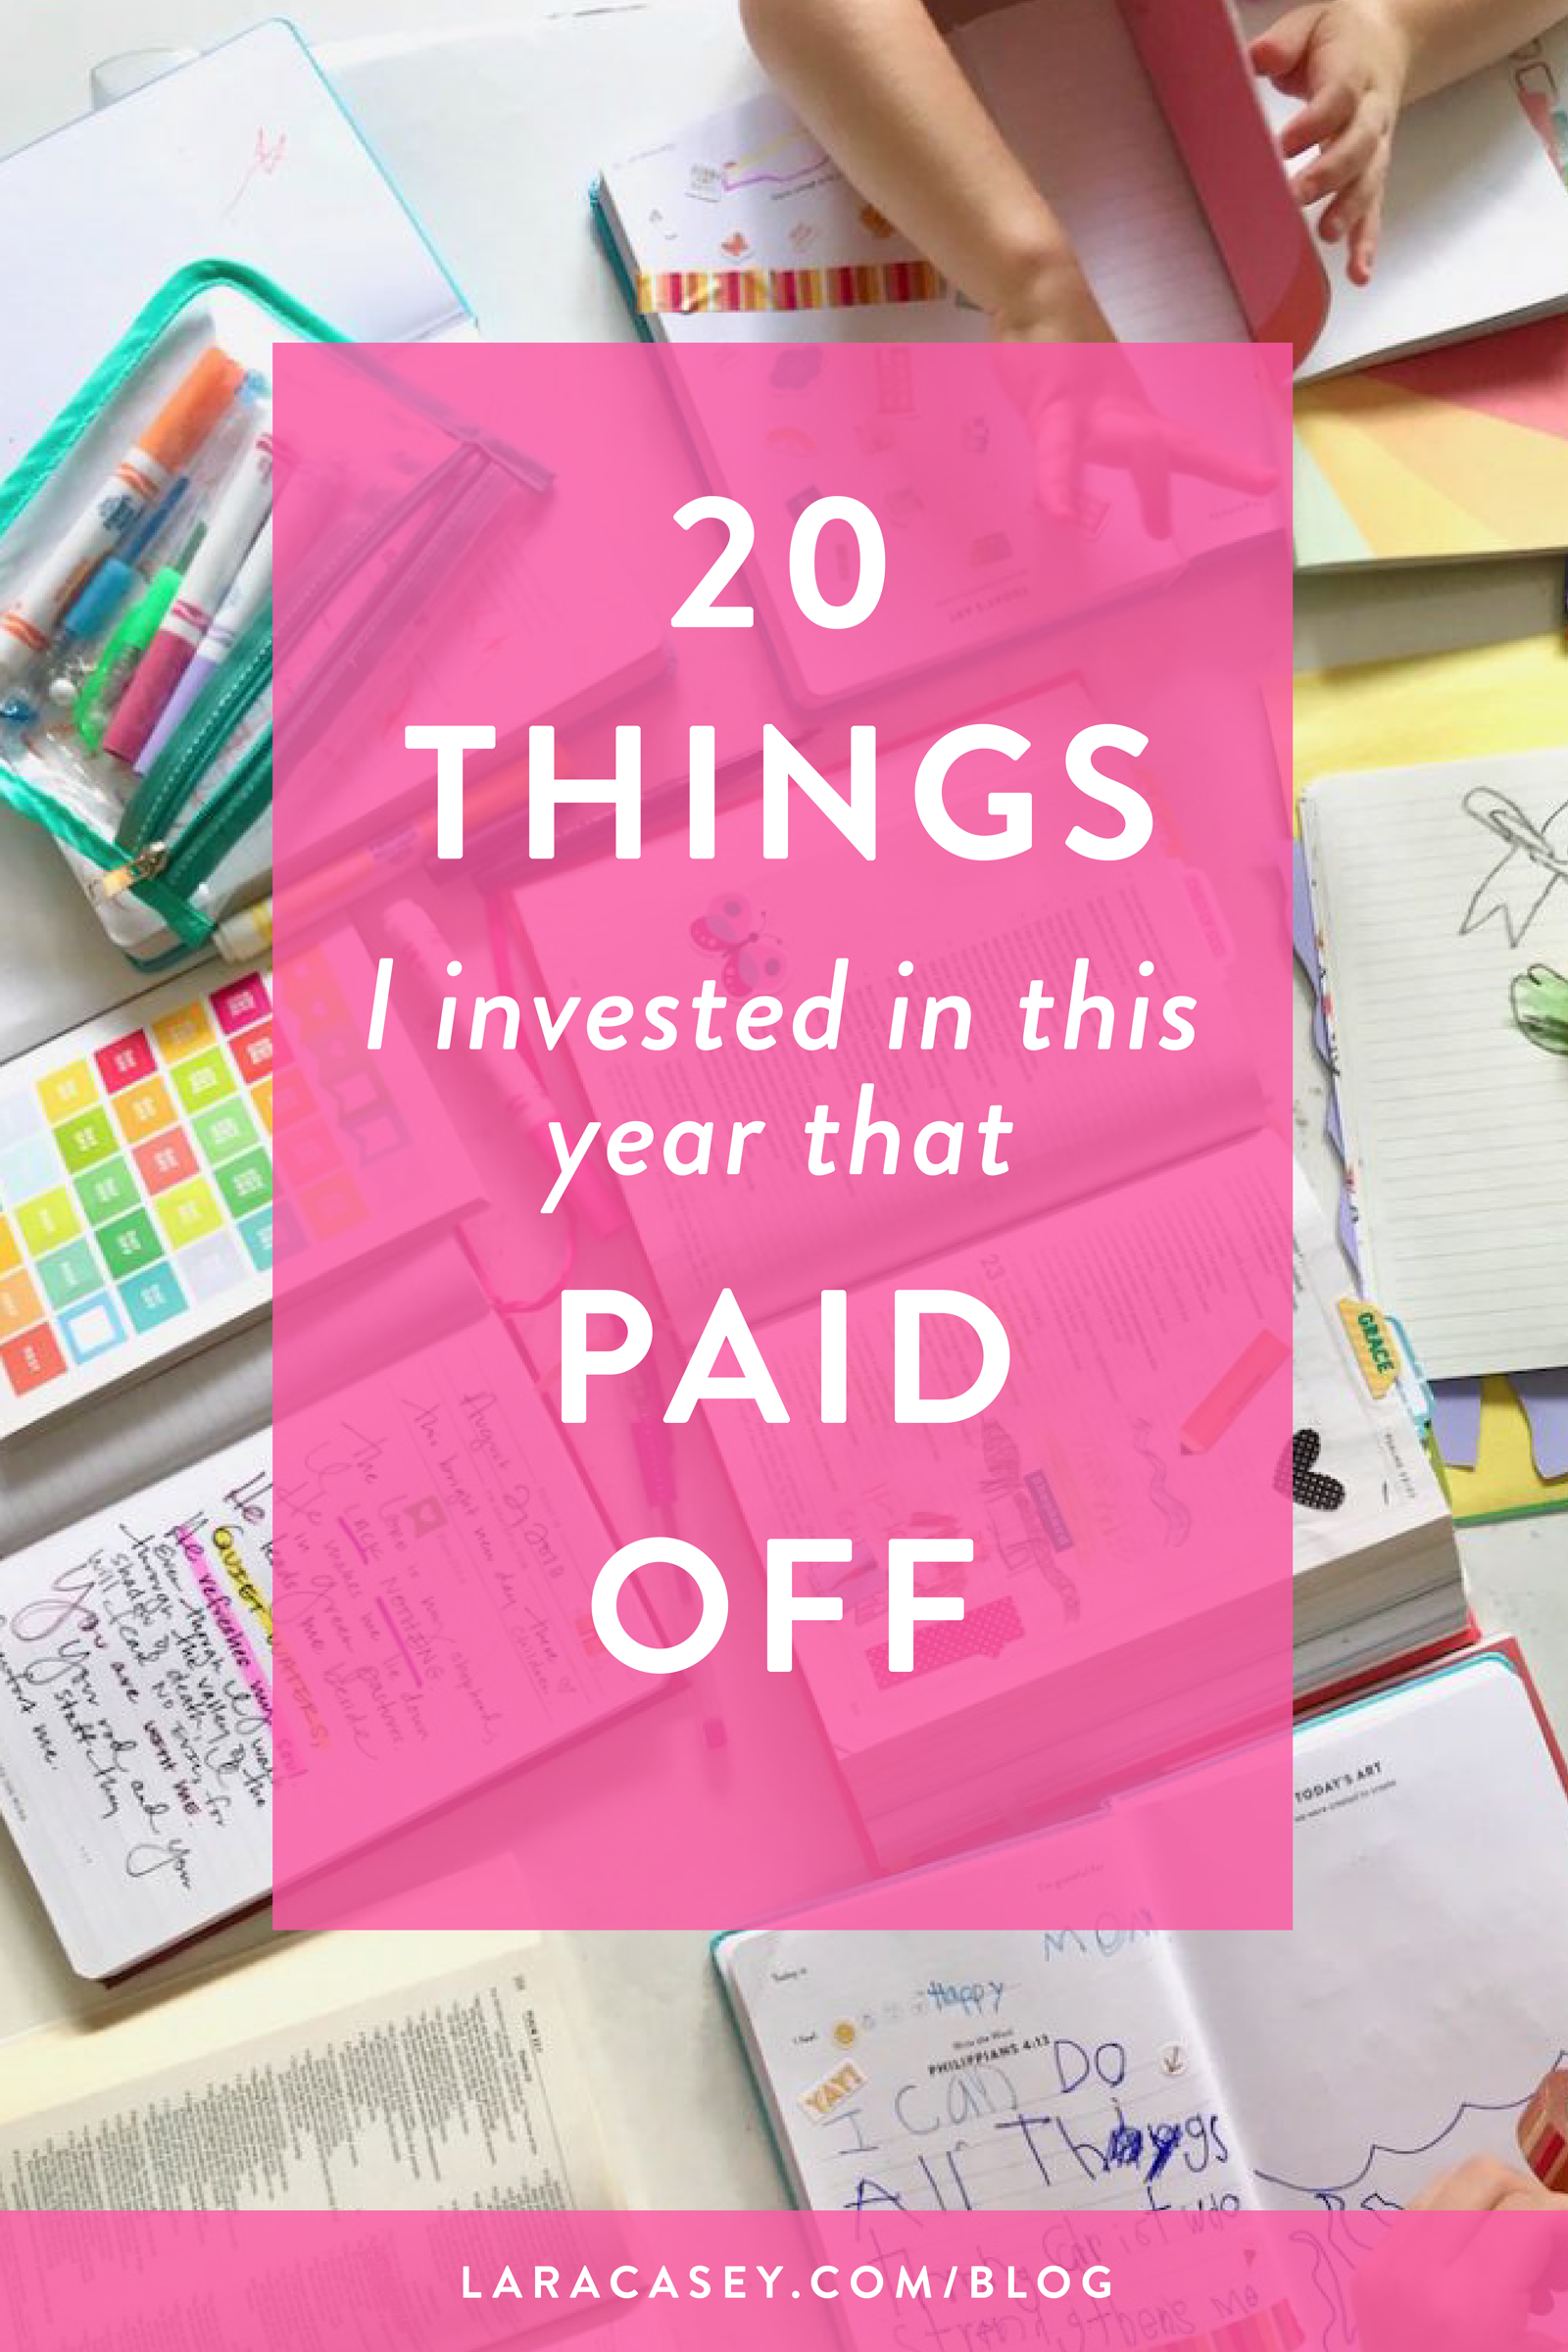 20 Things I Invested in that Paid Off